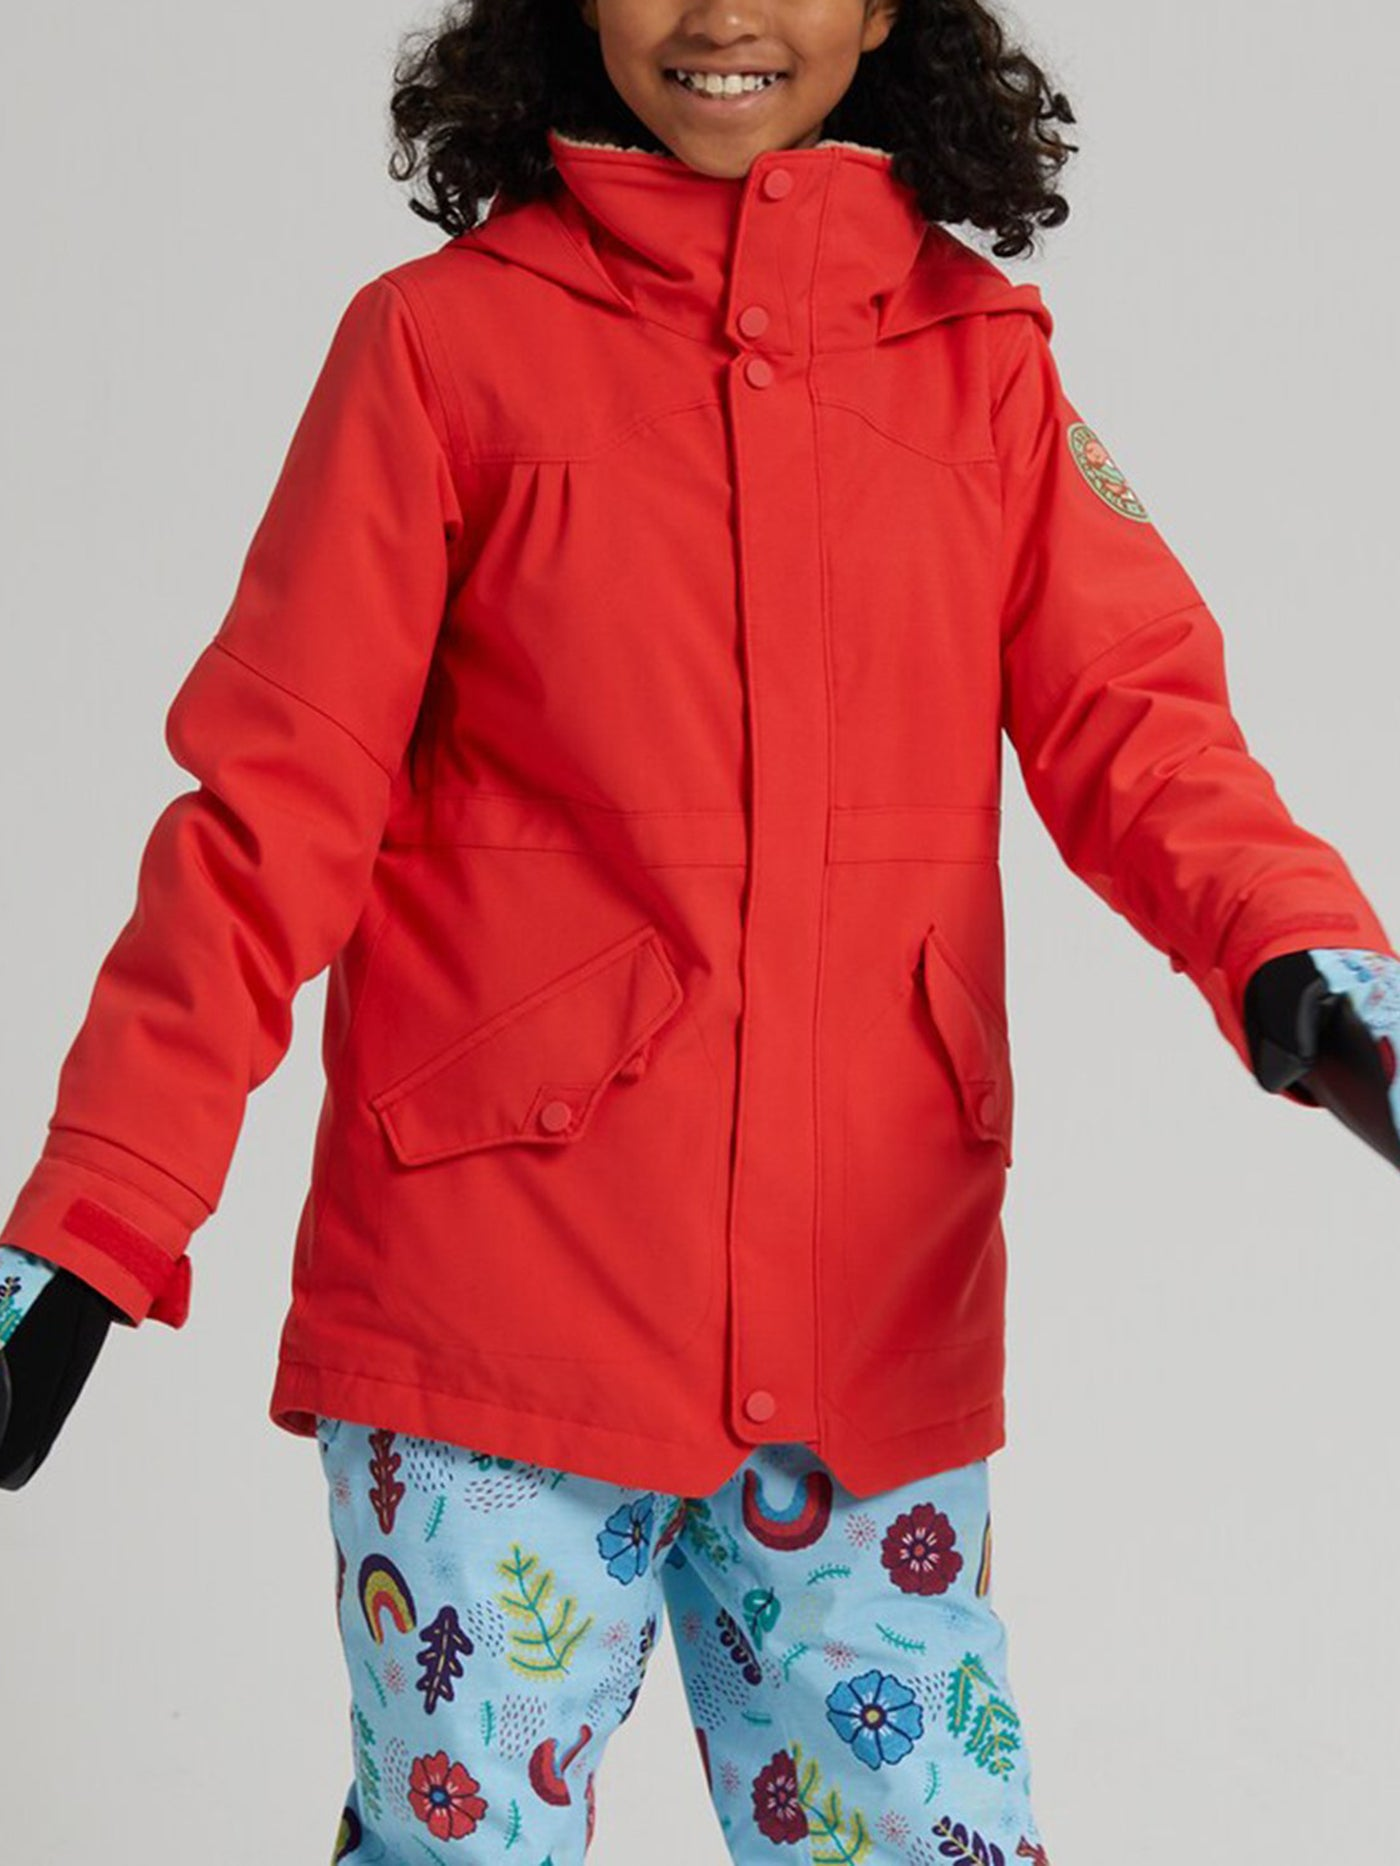 Shortleaf Insulated Parka Jacket (Youth 7-14)